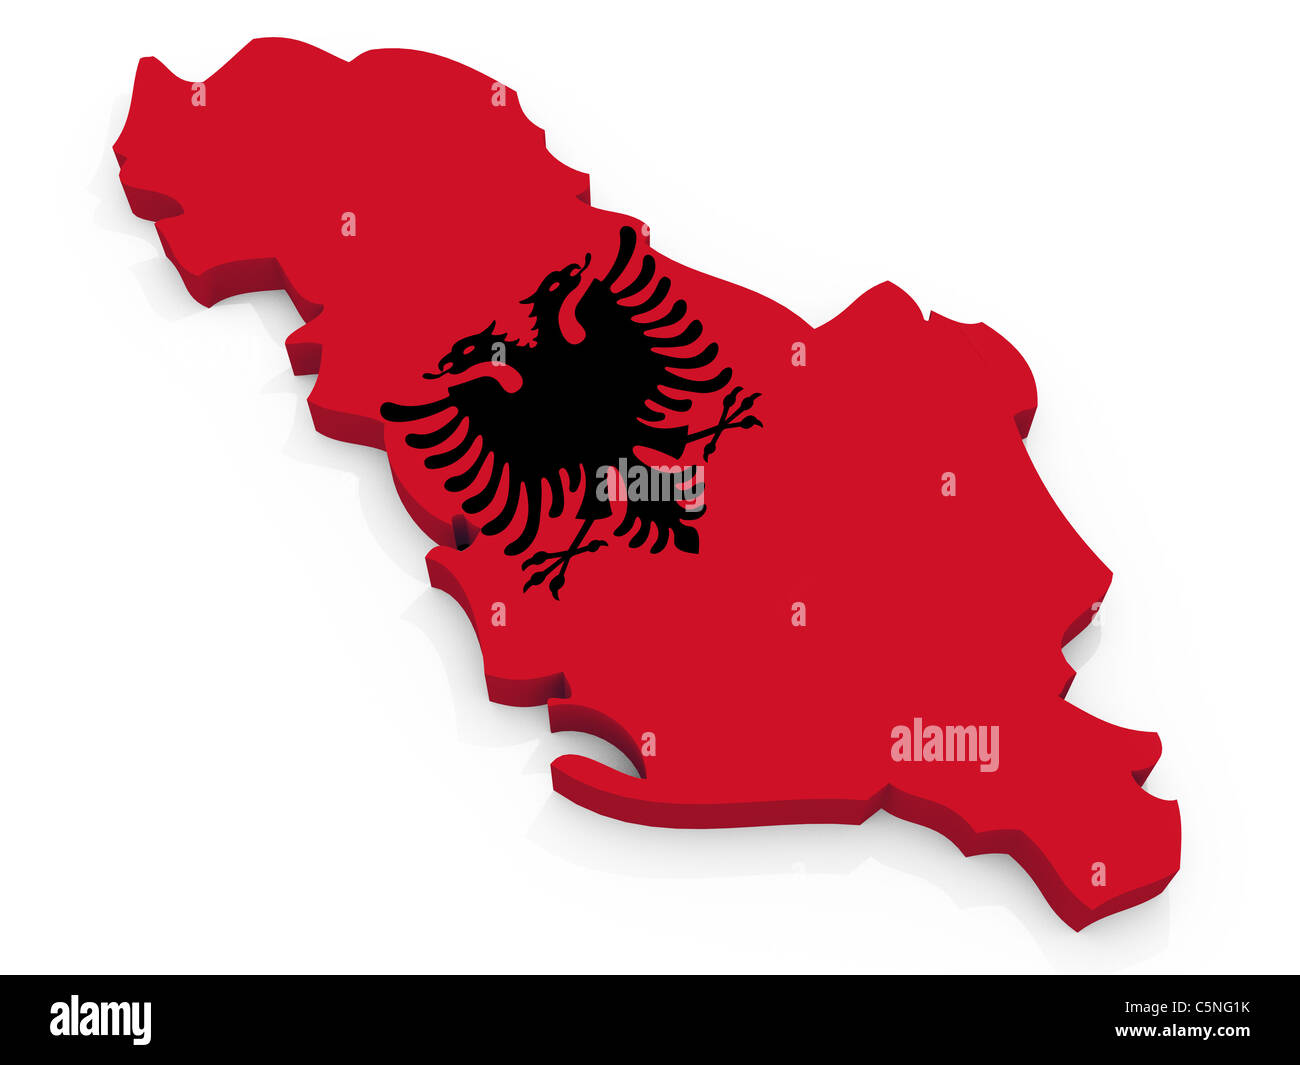 Map of Albania with flag Republic of Albania - Stock Image